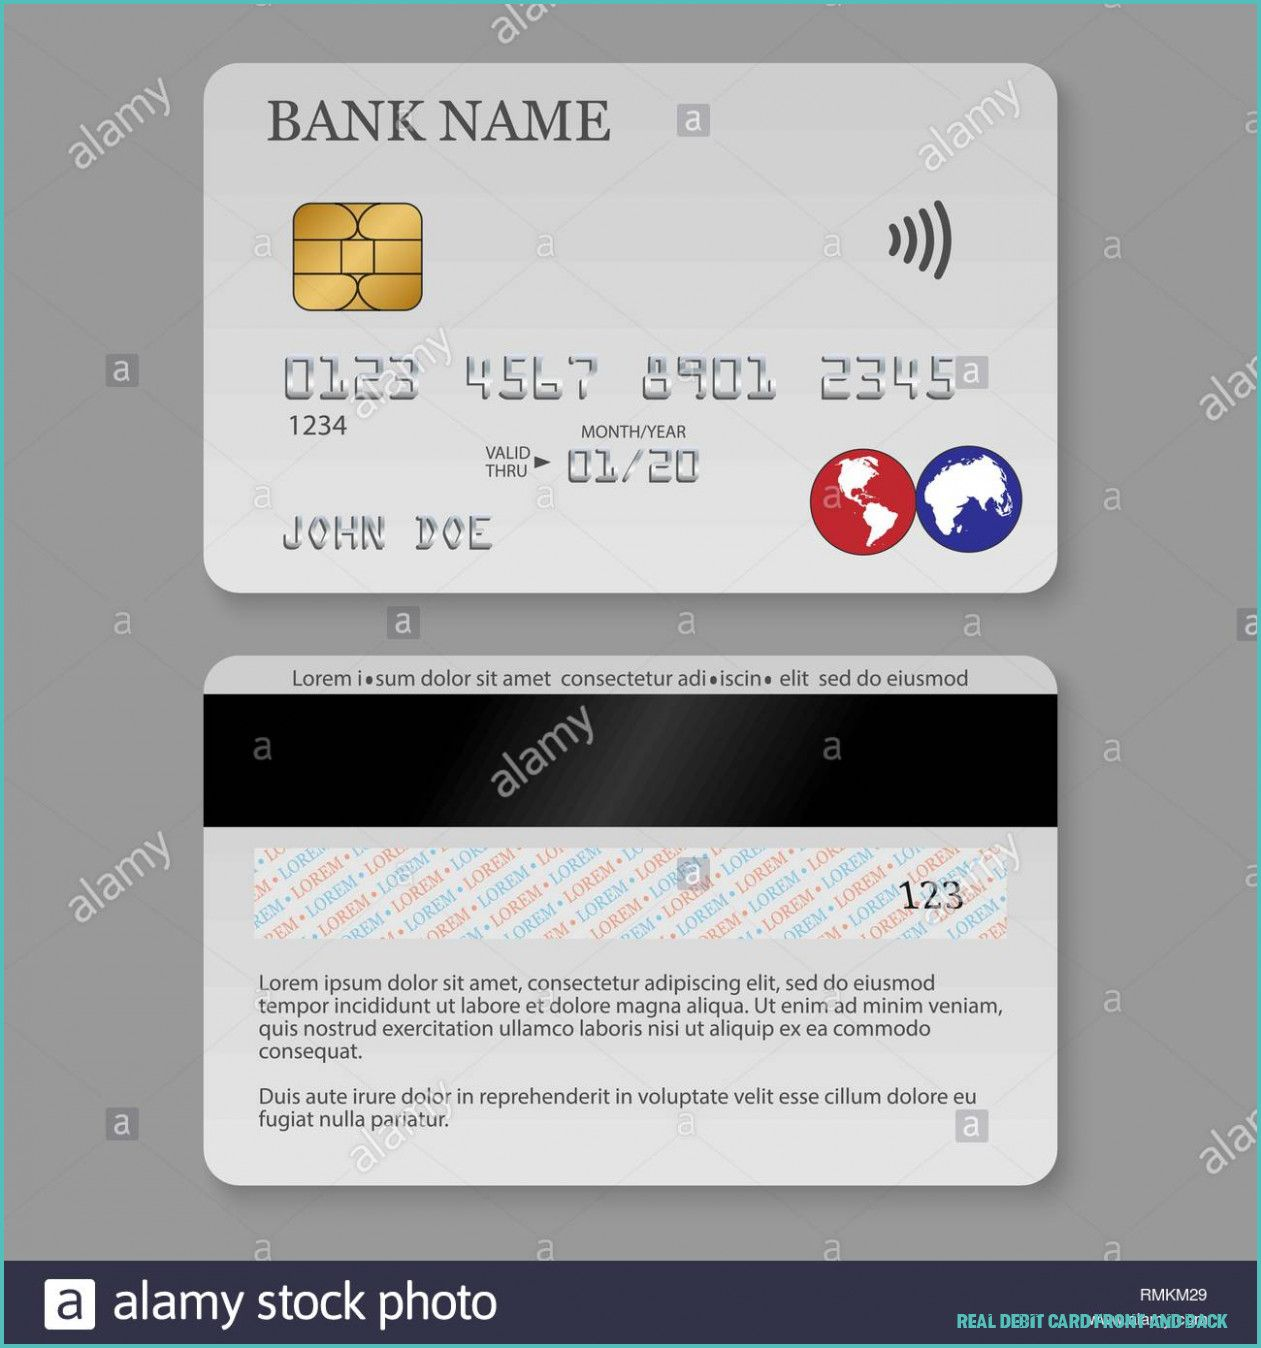 9 Facts About Real Debit Card Front And Back That Will Blow Your Mind Real Debit Card Front And Back H Credit Card Design Free Credit Card Credit Card Online